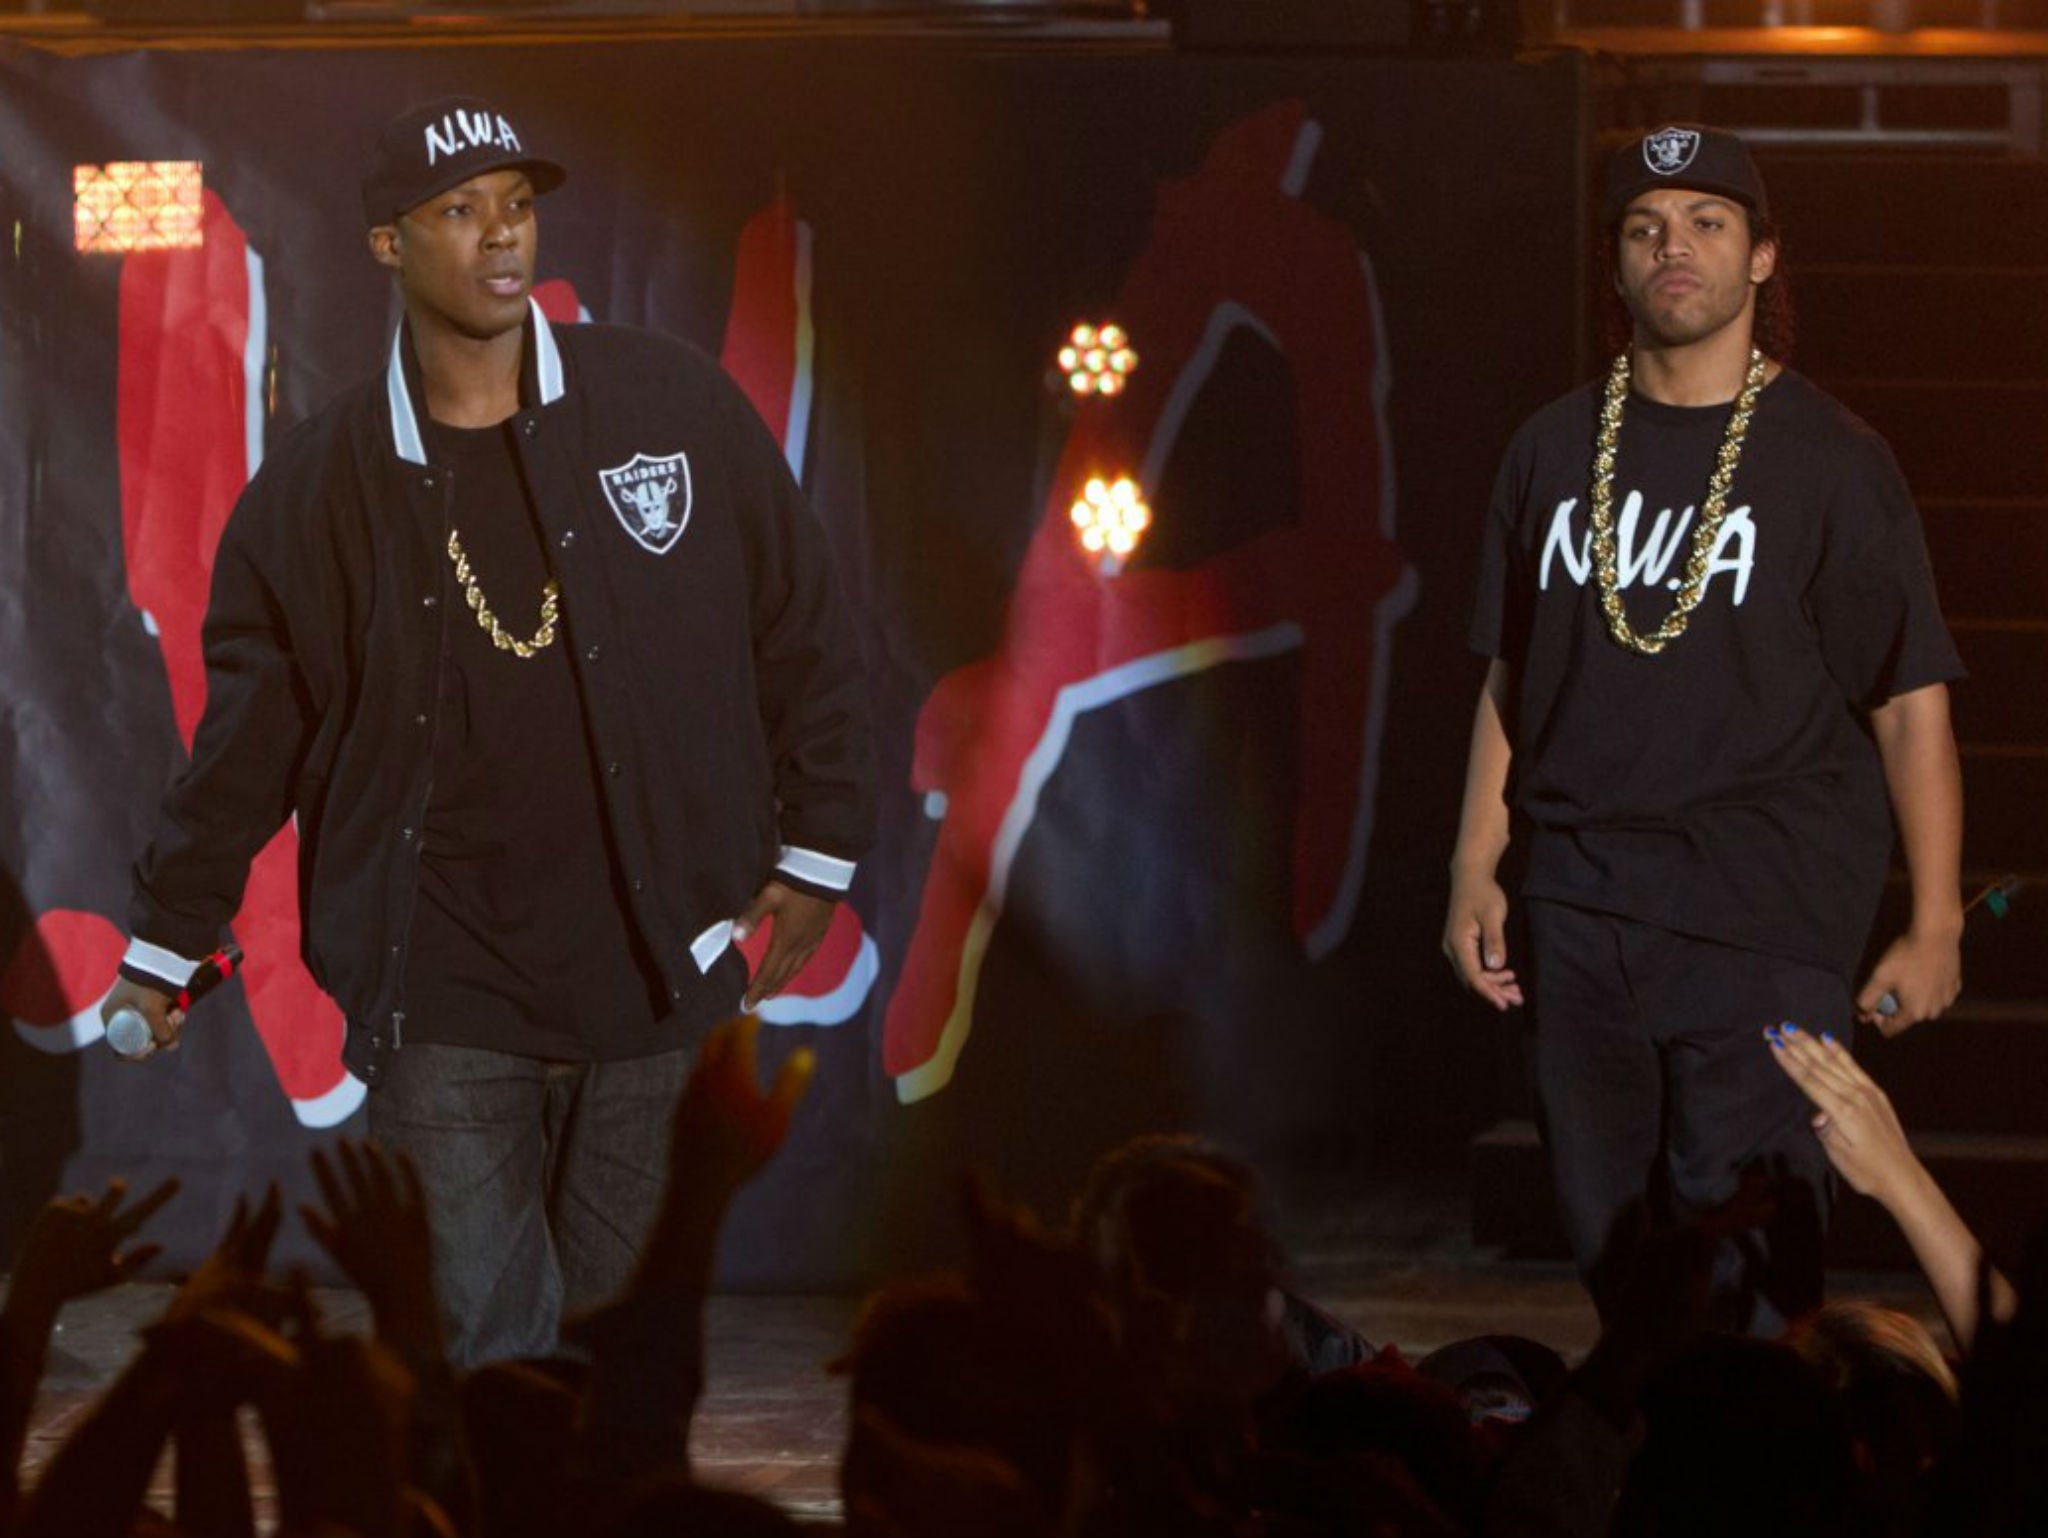 Straight Outta Compton could be surprise Oscar best picture candidate